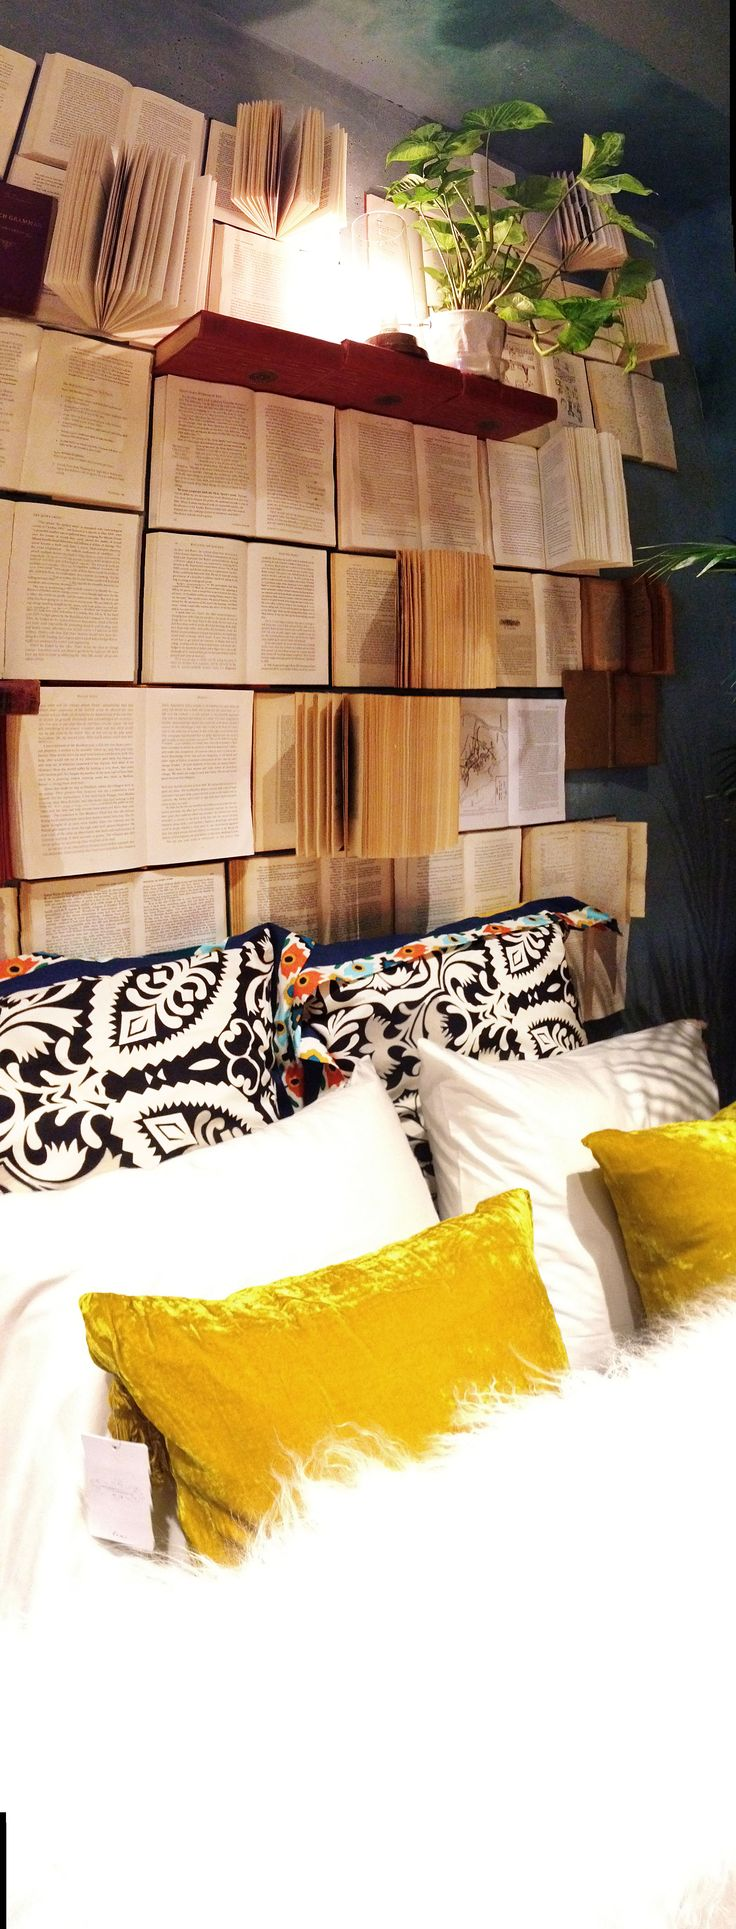 Super creative headboard made of actual books